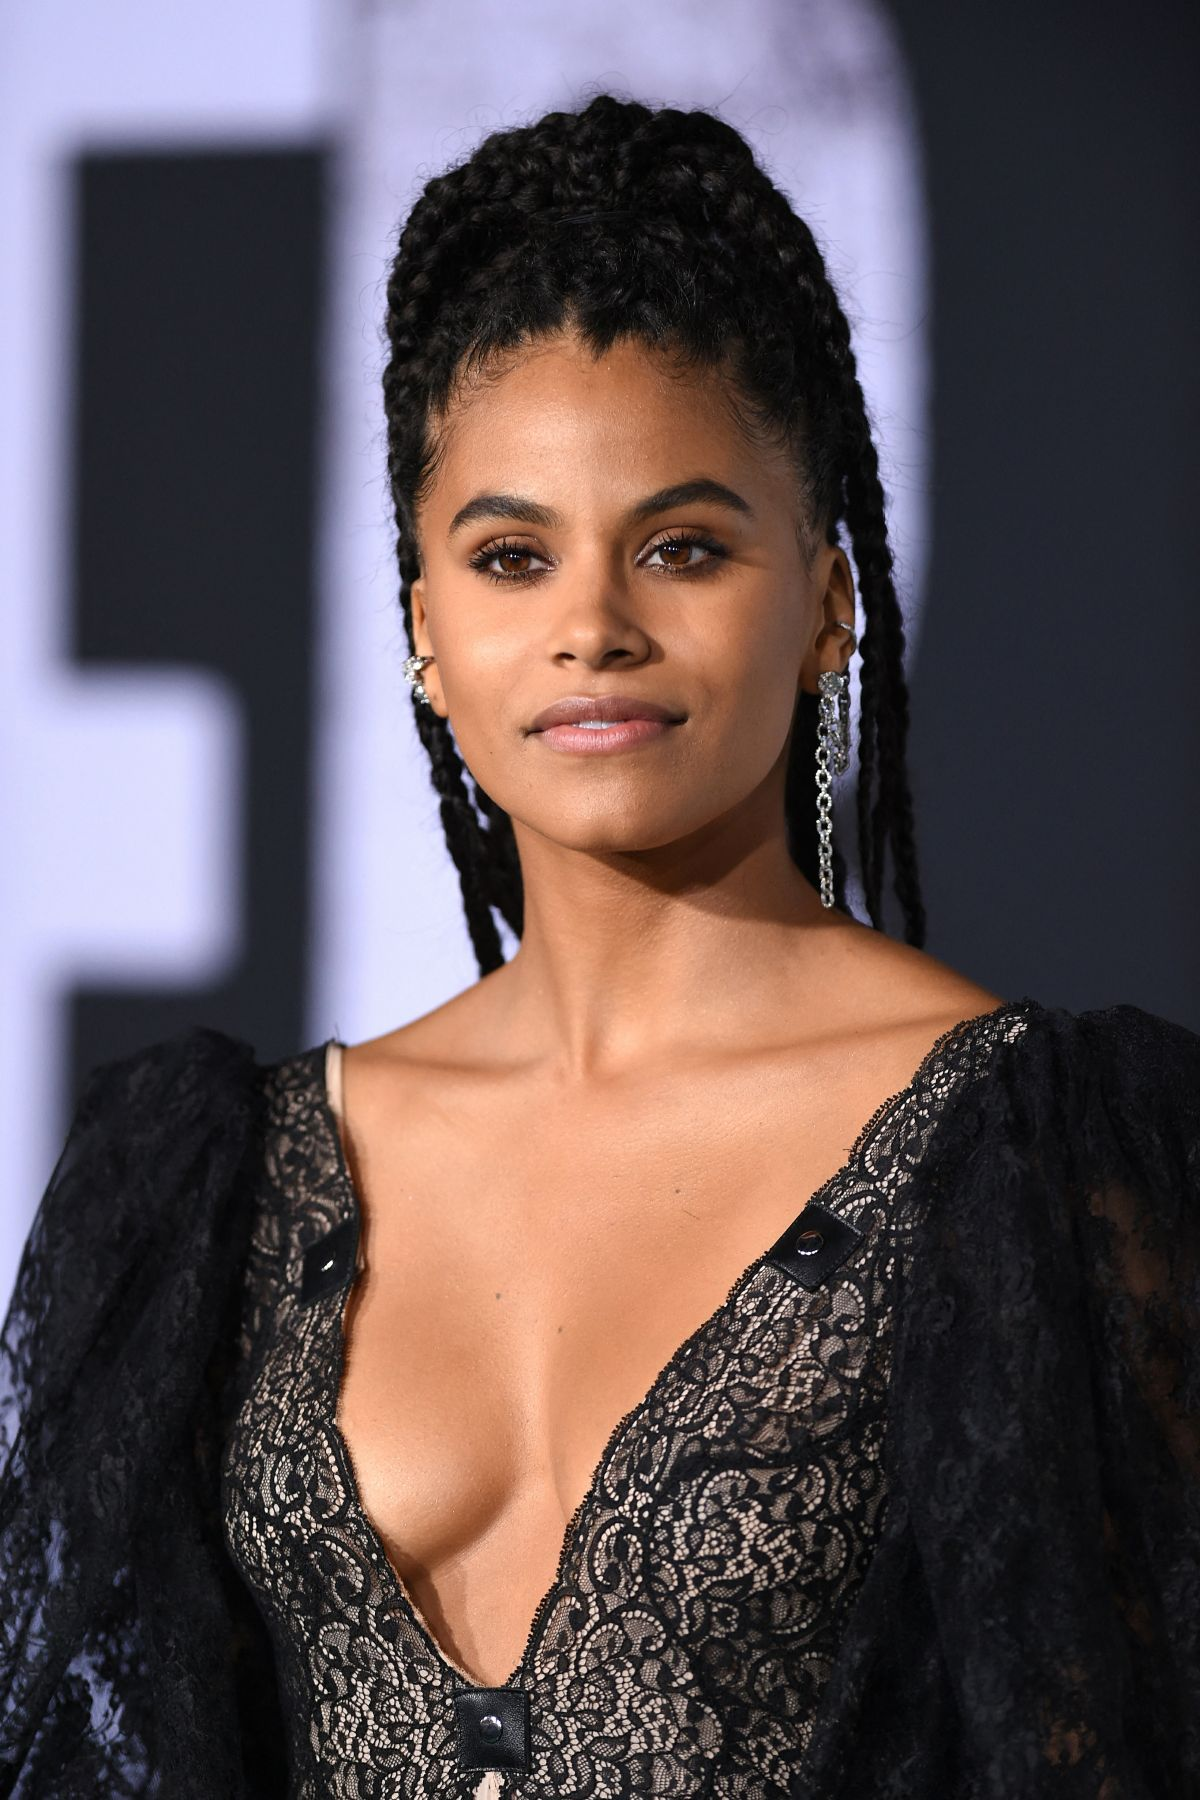 Joker Review - Zazie Beetz at the premiere